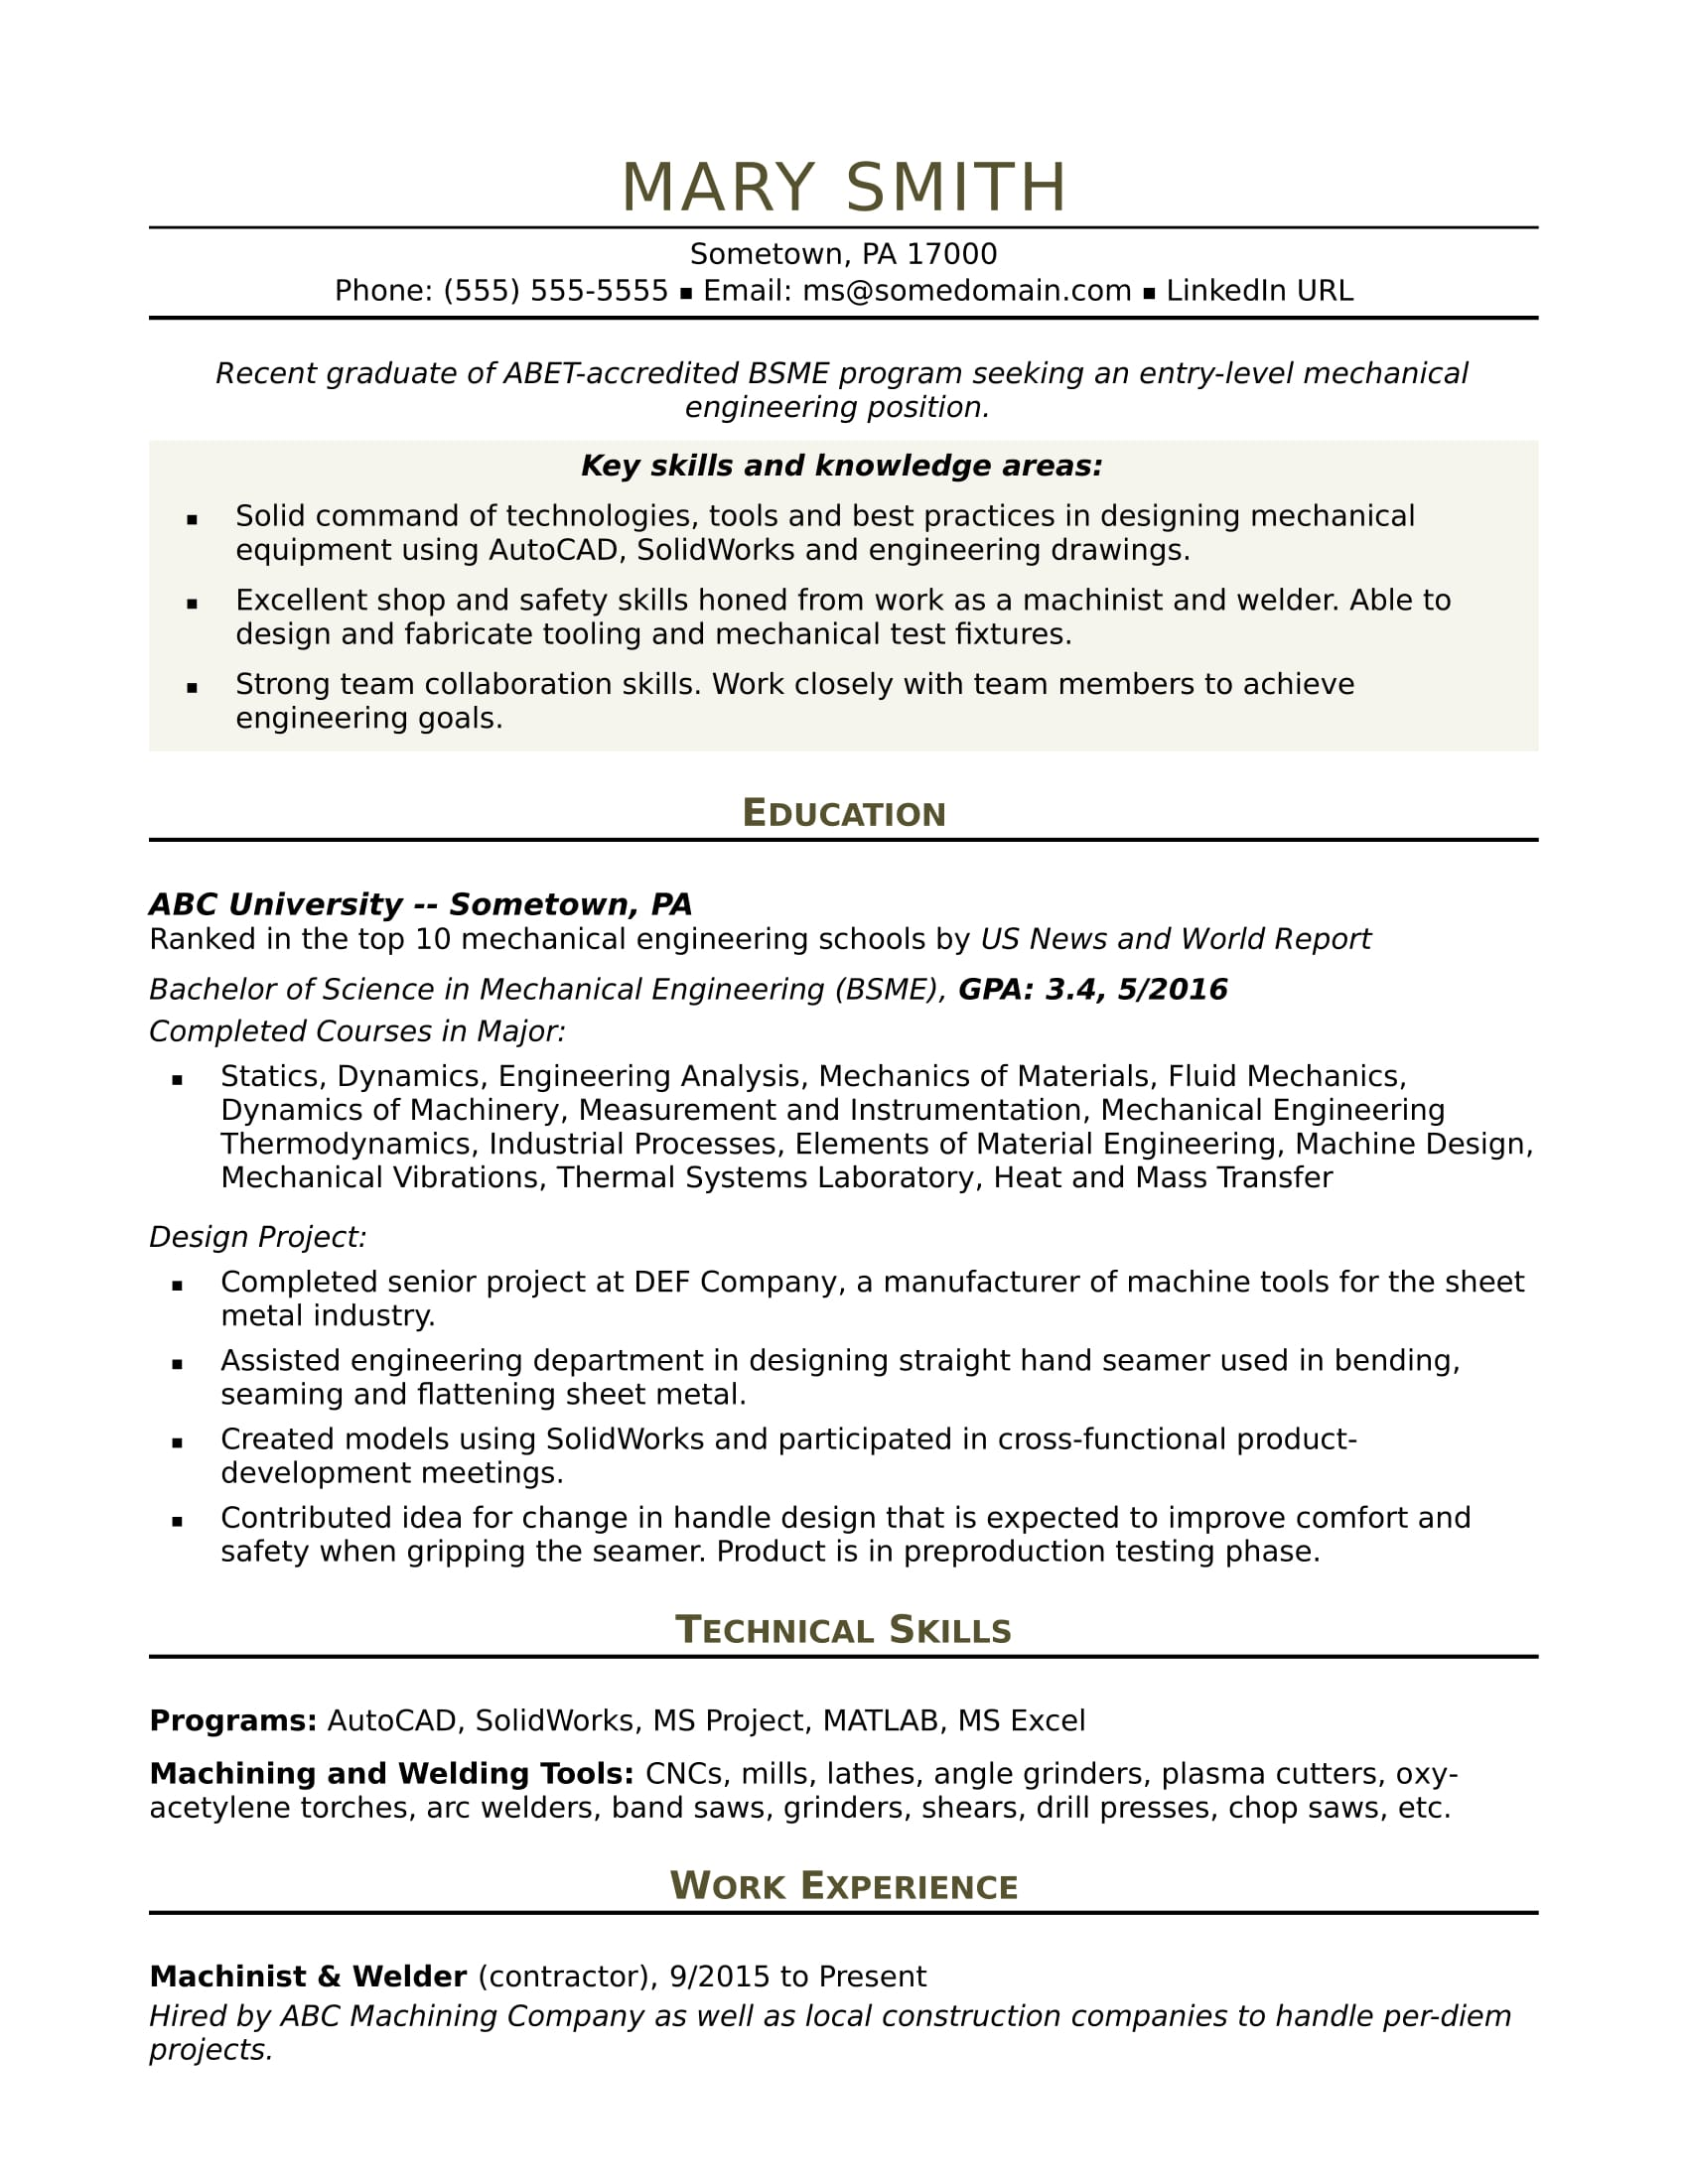 sample resume for an entry level mechanical engineer - Sample Resume Graduate